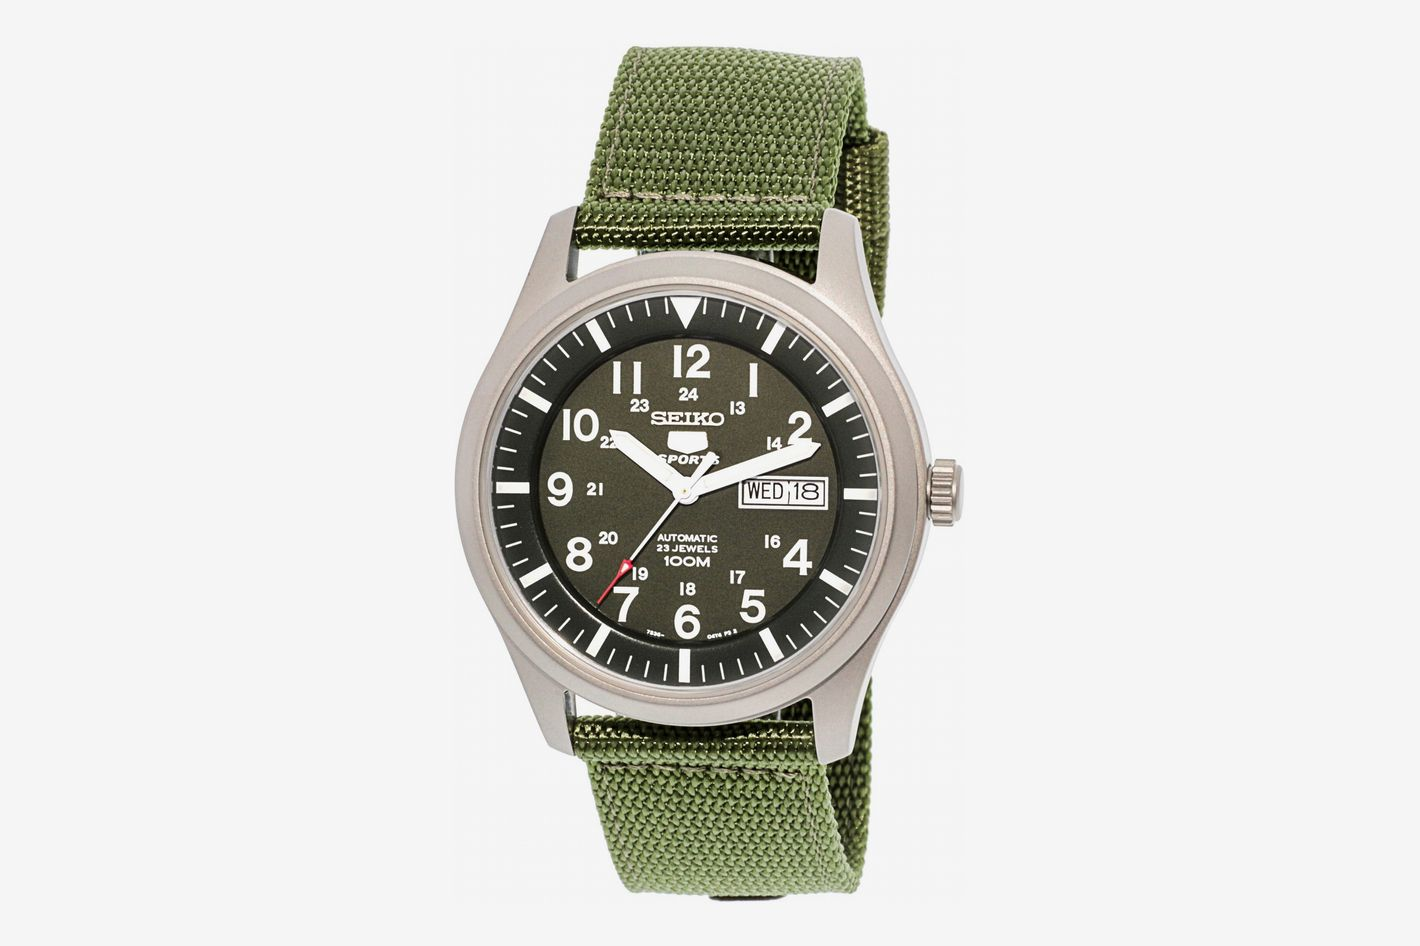 Seiko SNZG09 5 Sport Automatic Khaki Watch